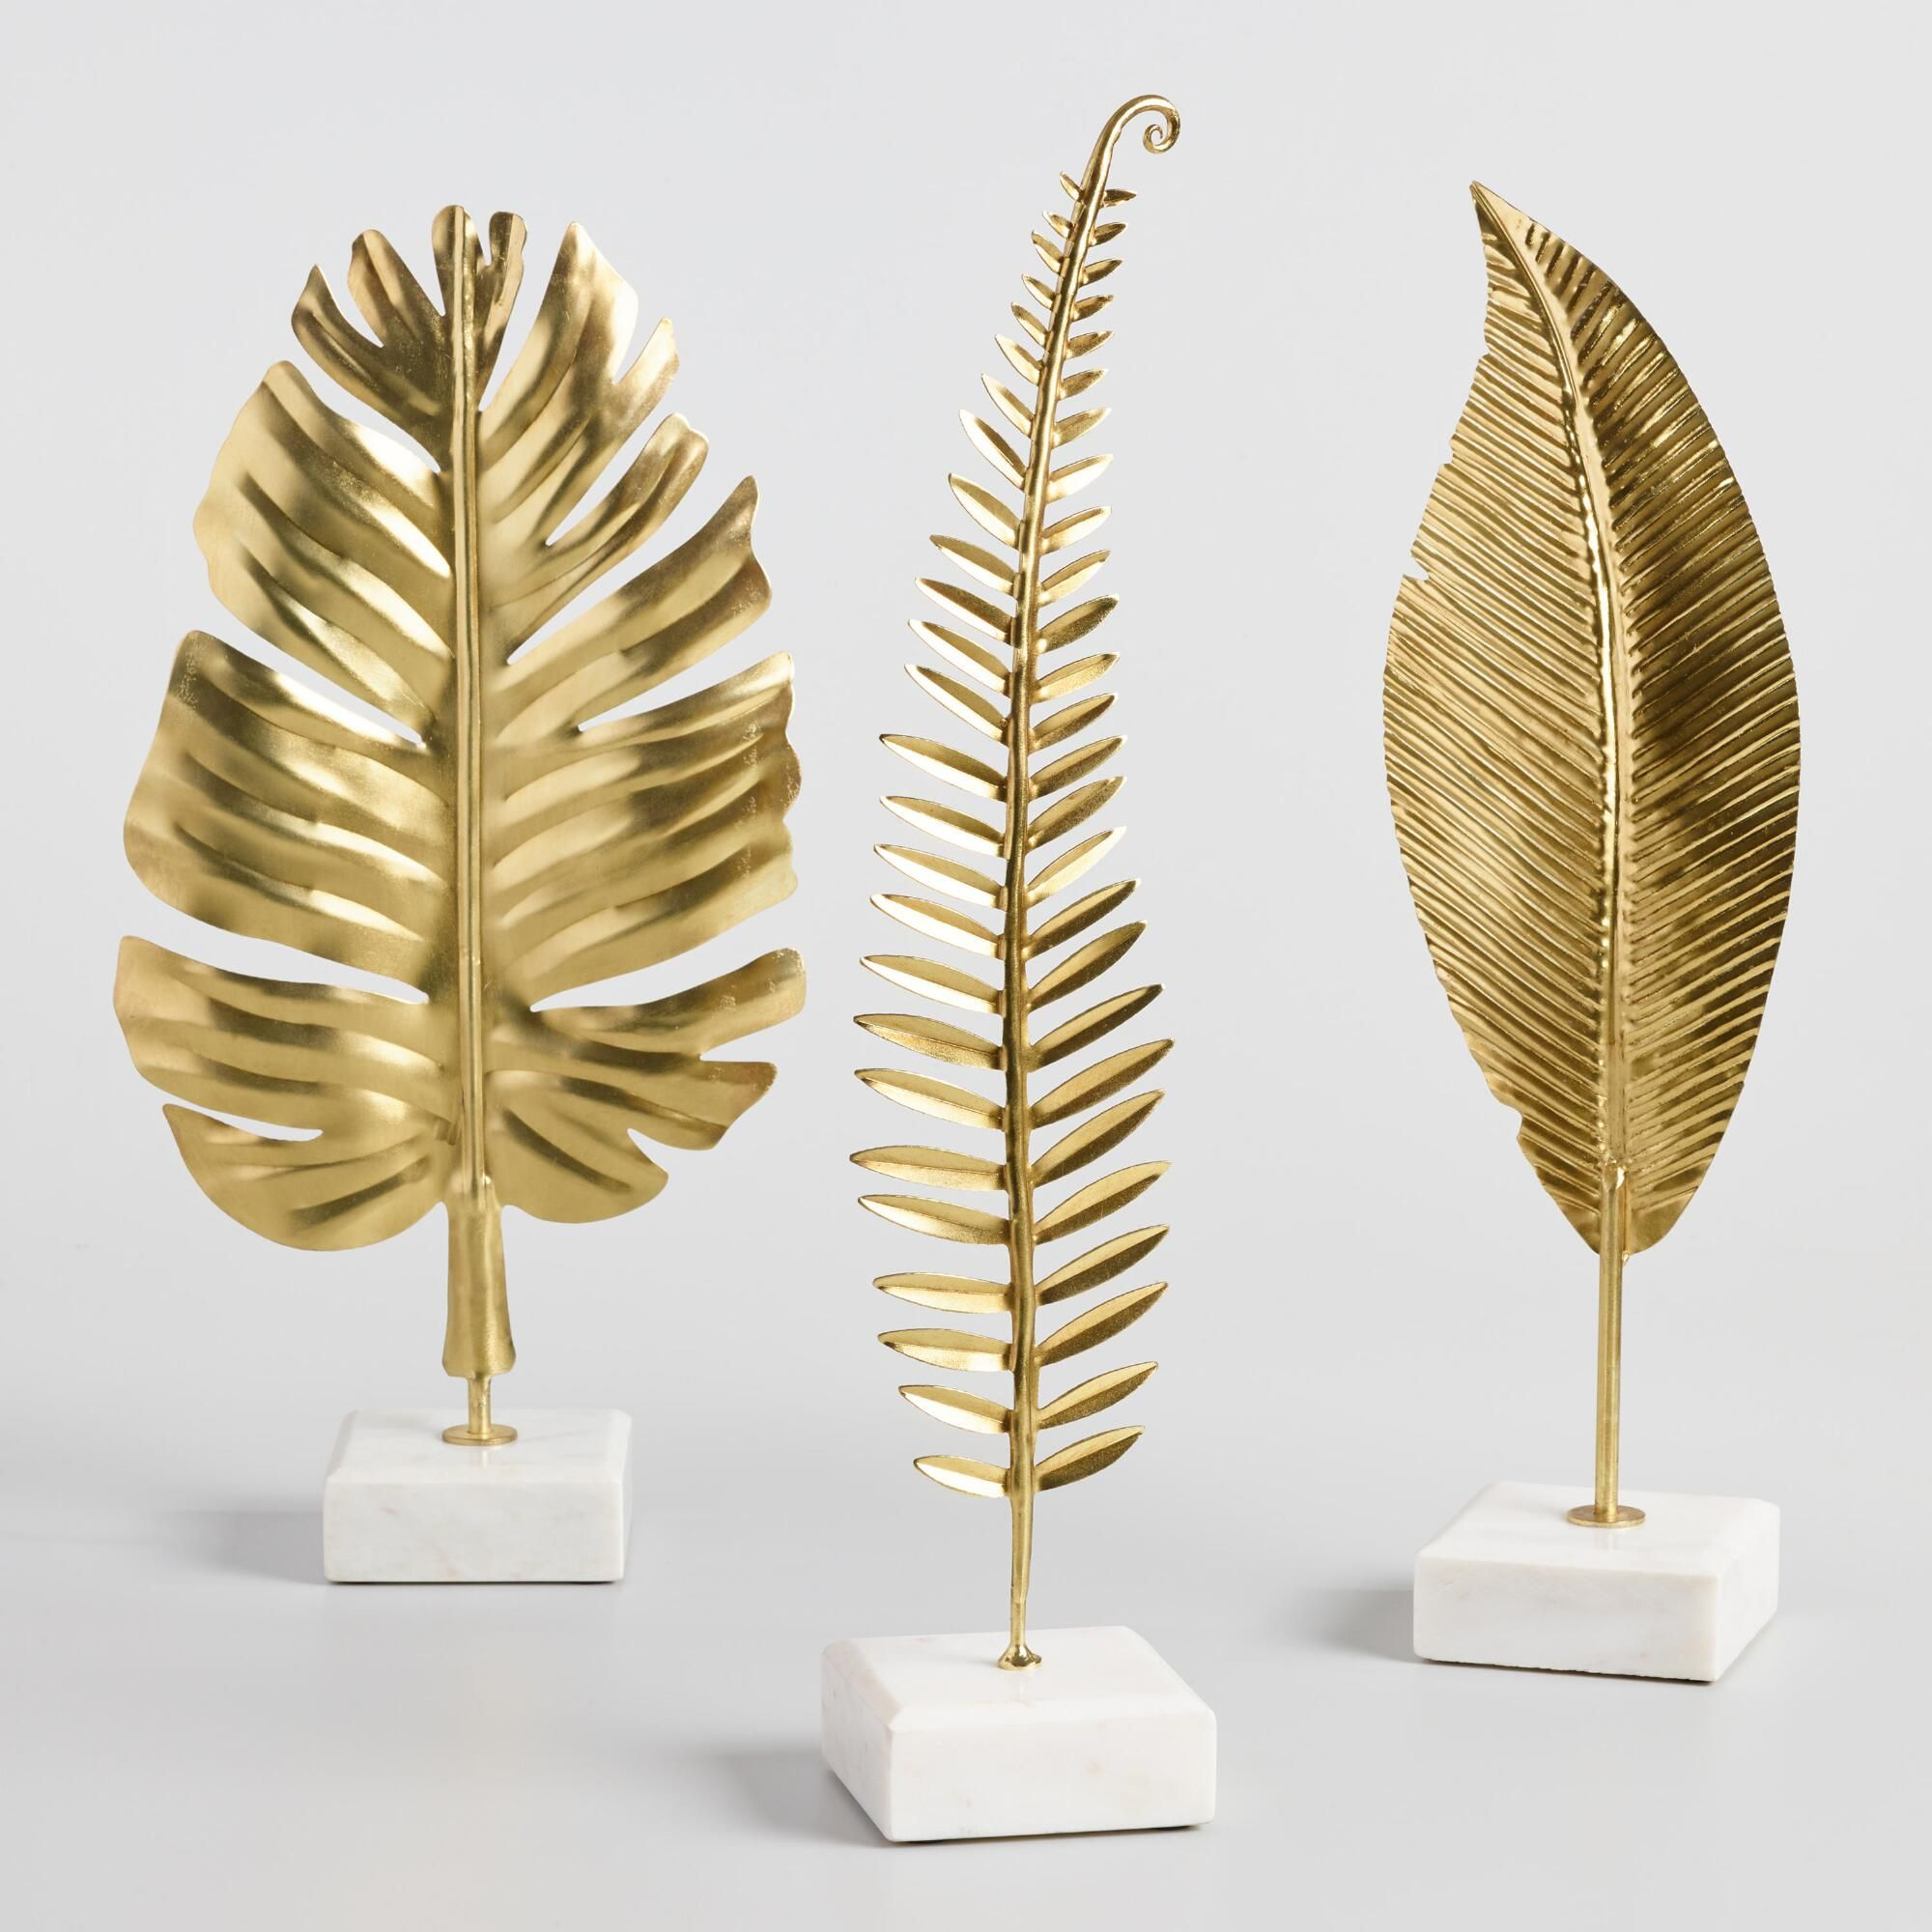 Gold Leaf on Marble Stand Decor Set of 3 by World